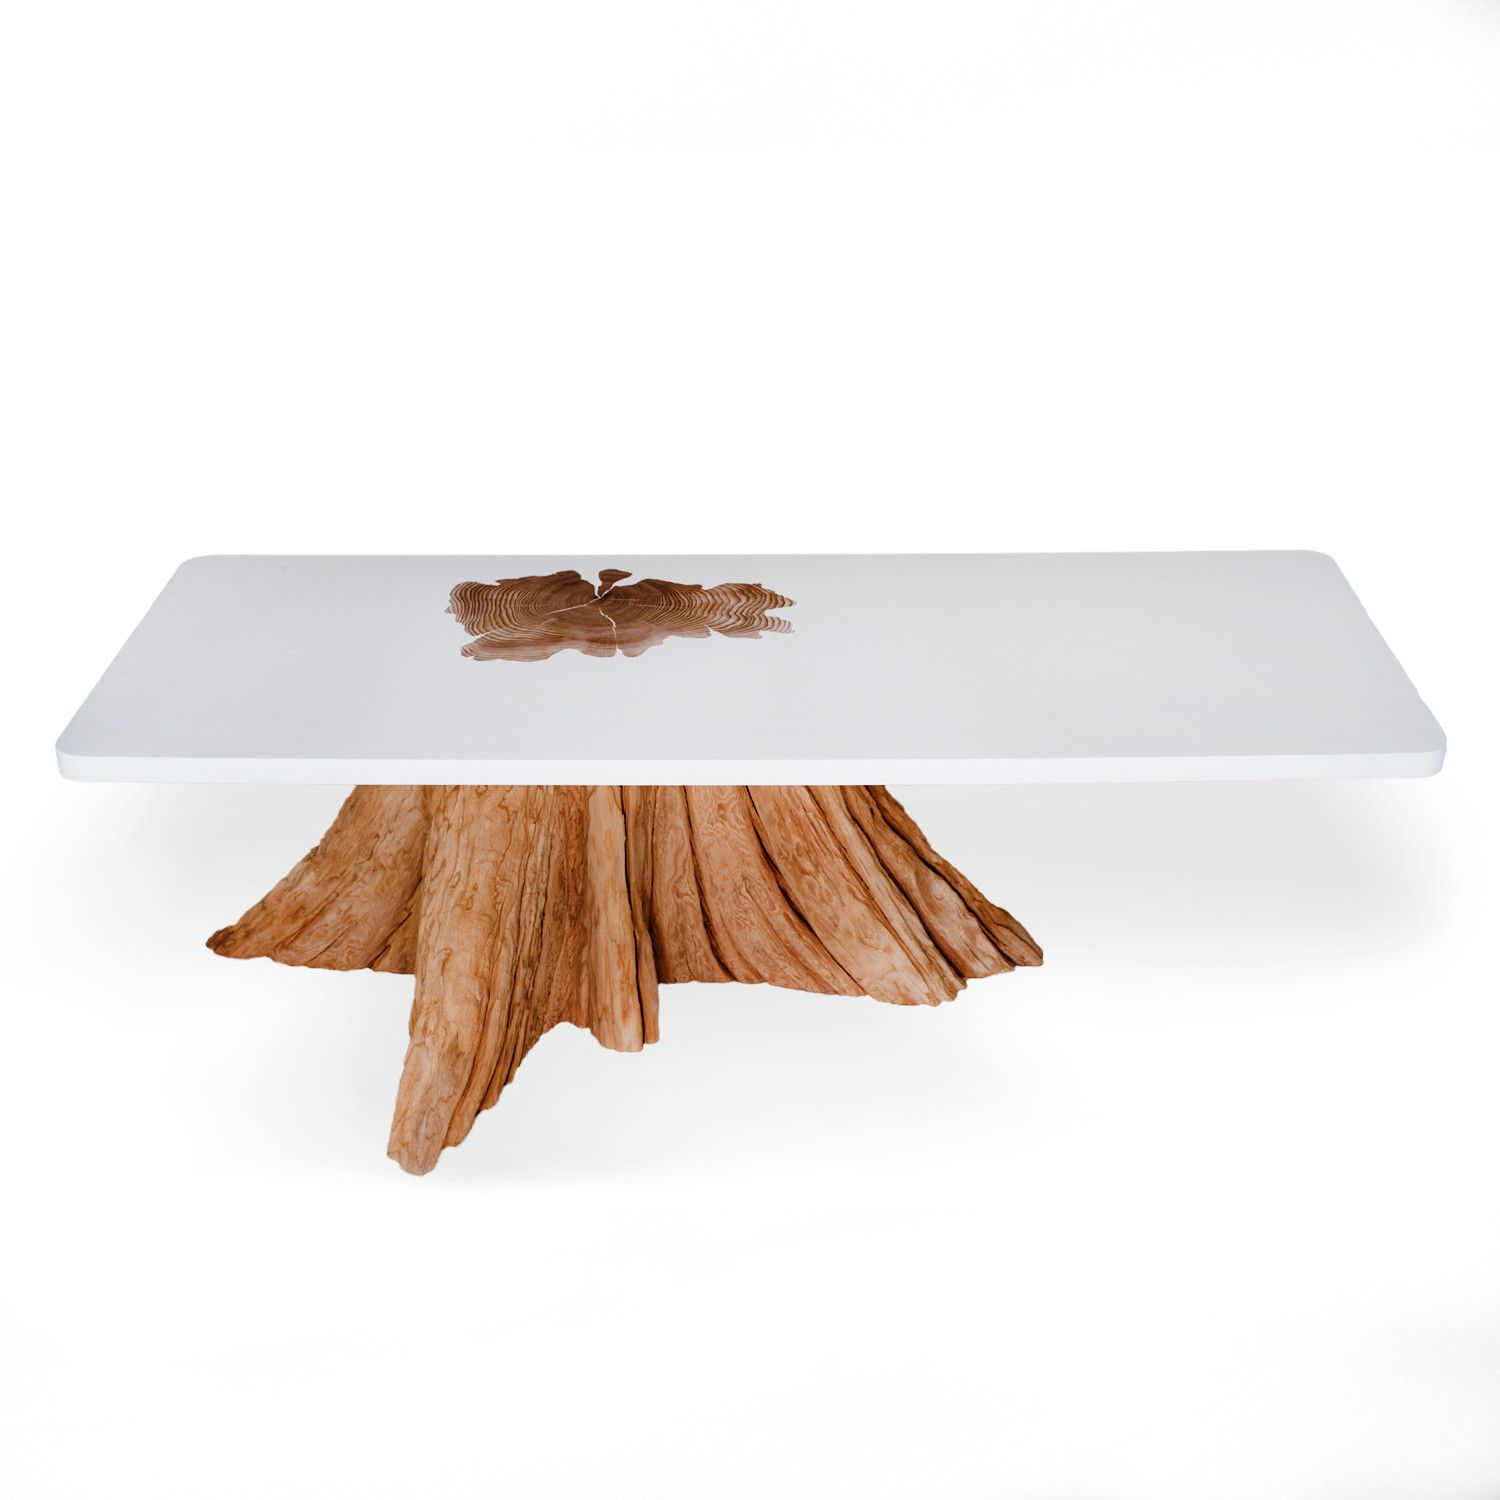 Perfect Bloom Coffee Table   Rectangle By Michael Thomas Host And Tanja Hinder :)